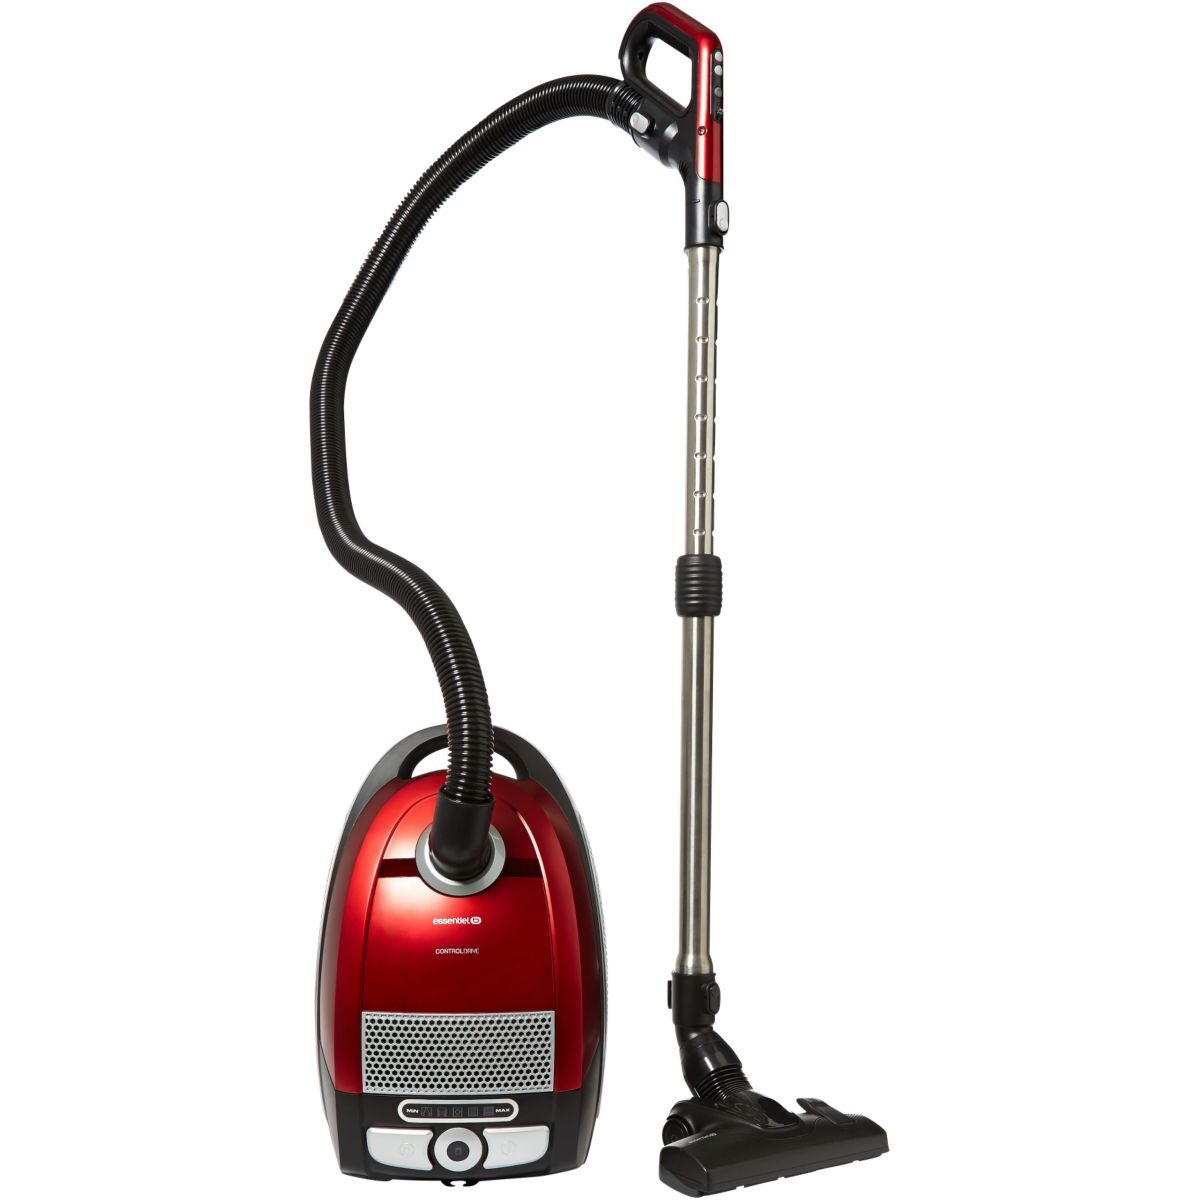 Aspirateur avec sac ESSENTIELB EAT 791CD CONTROLDRIVE (photo)